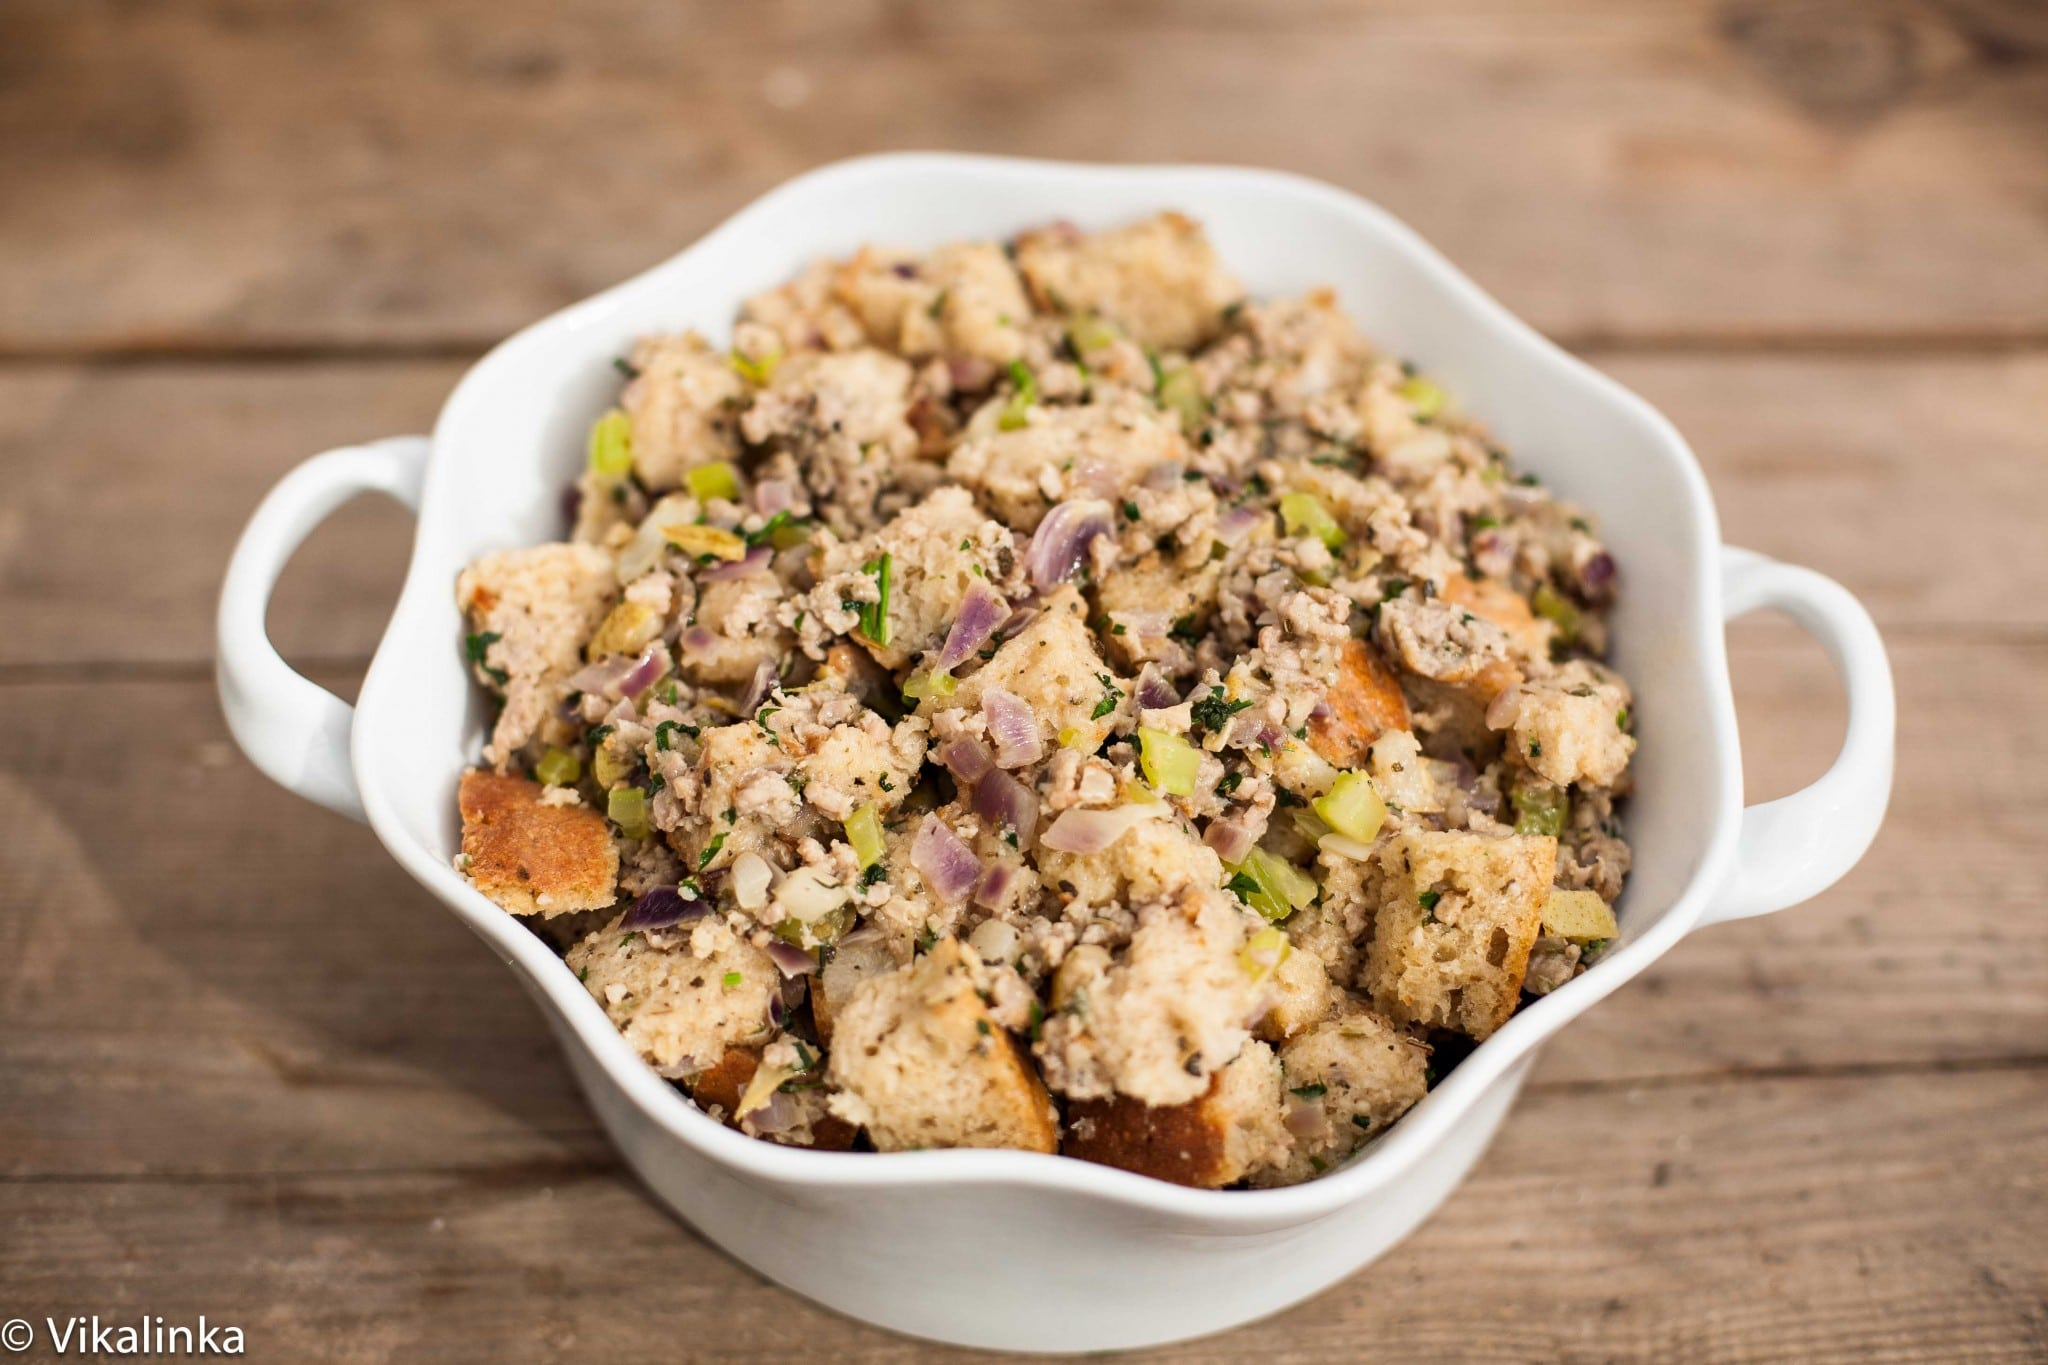 Sausage, Pear and Sage Stuffing (process image)